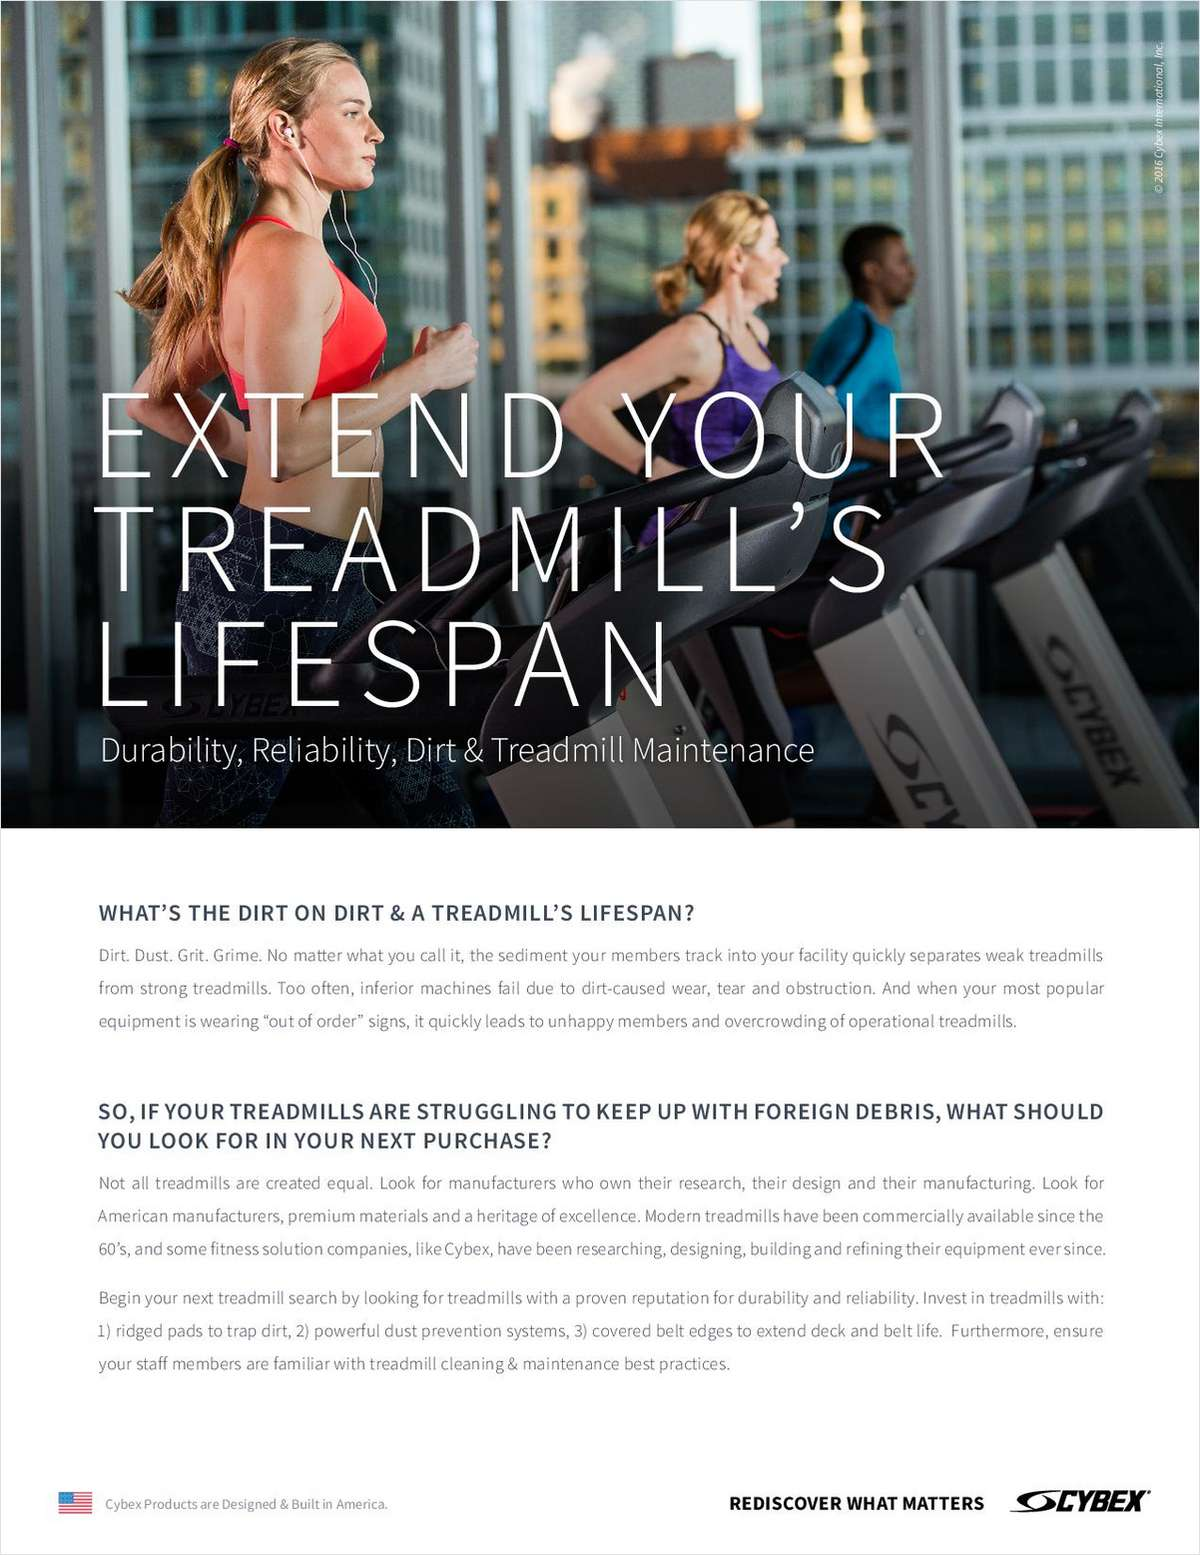 How to Extend Your Treadmill's Lifespan